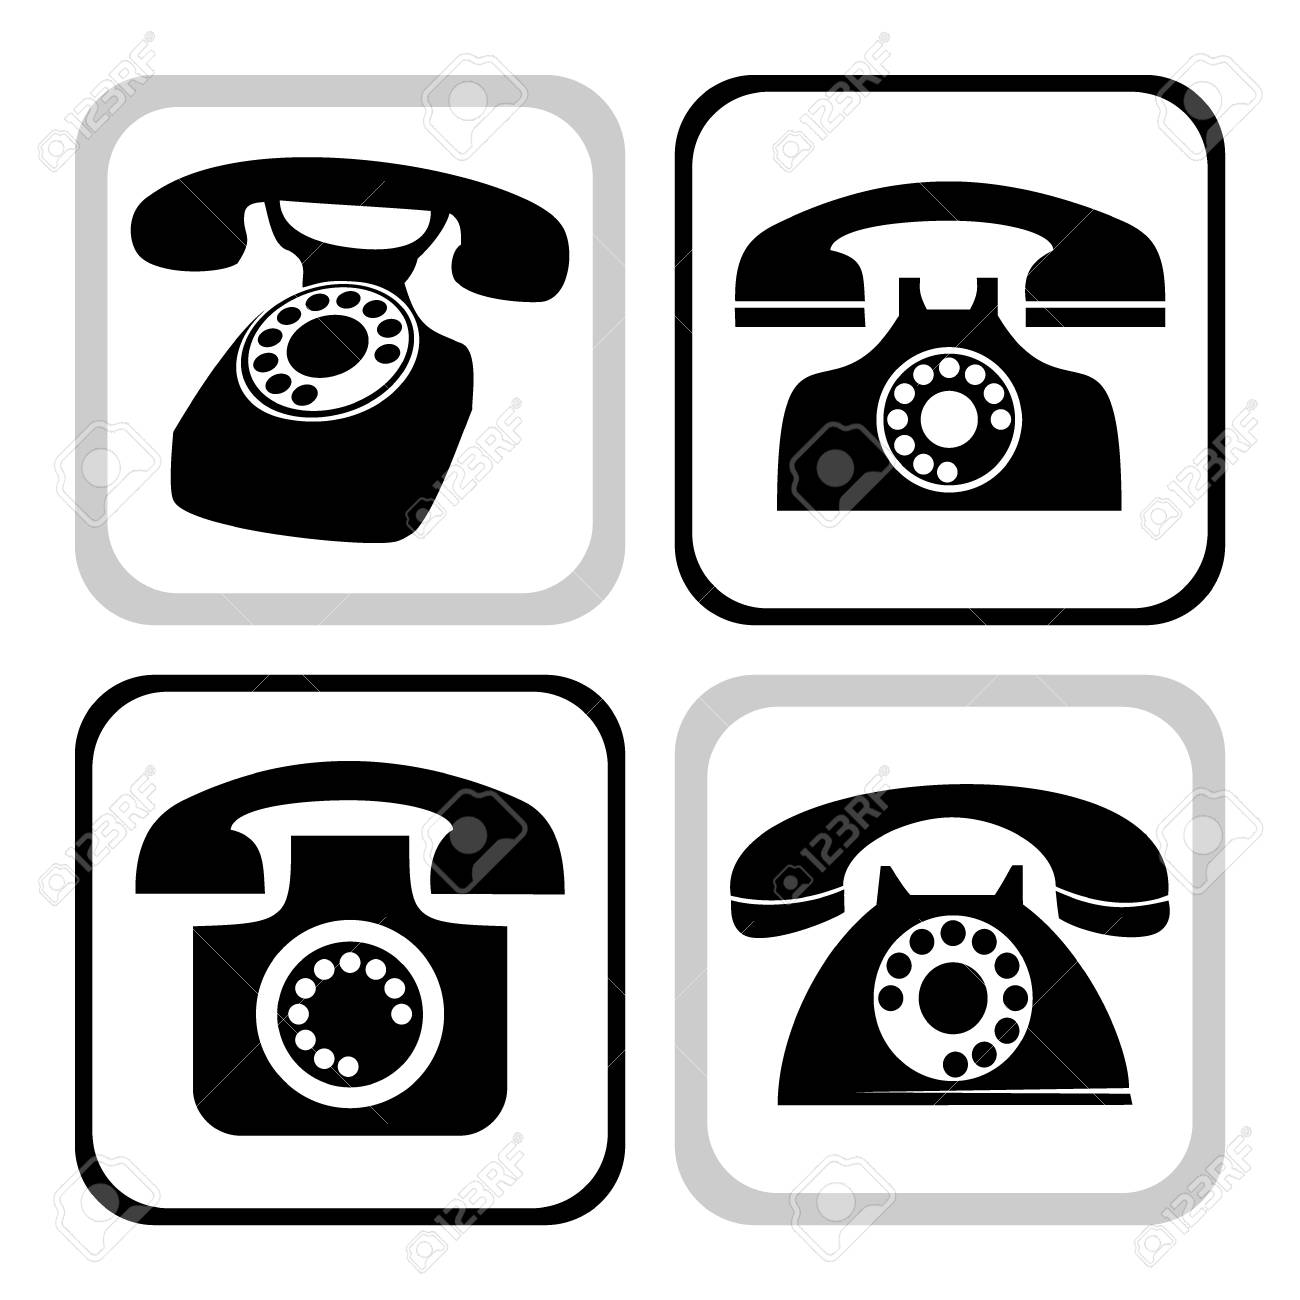 telephone collection Stock Vector - 6950873